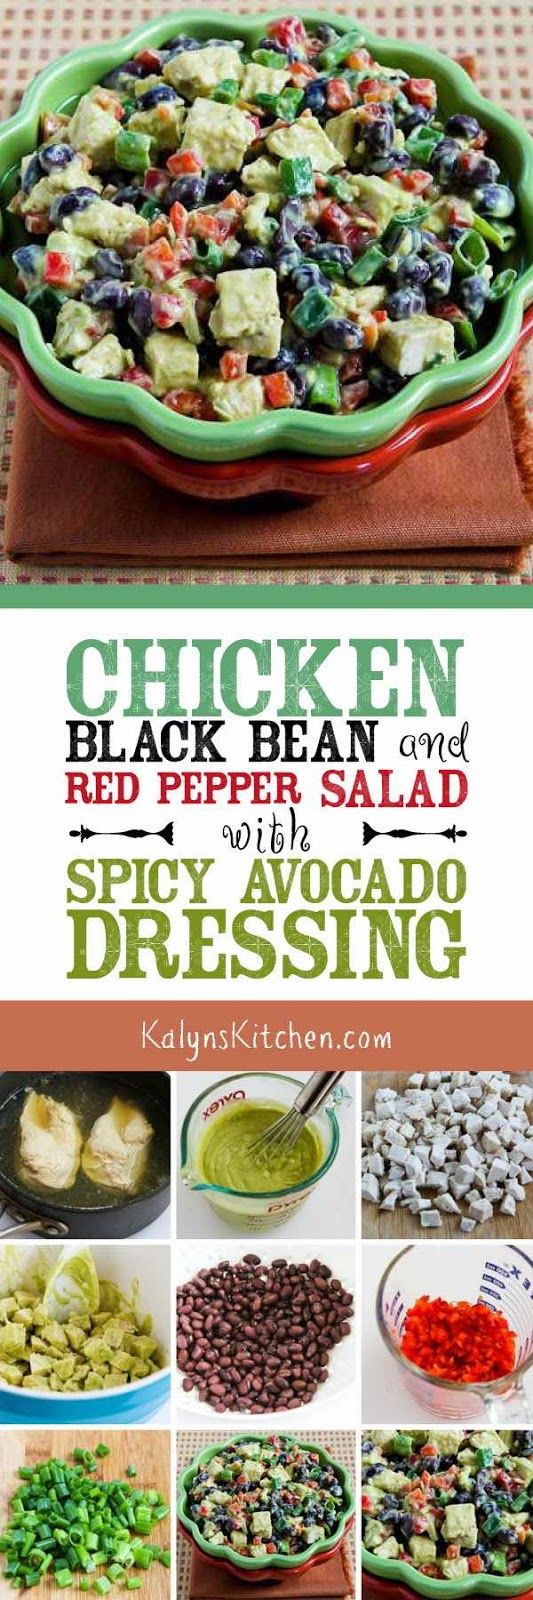 There are so many great flavors in this Chicken, Black Bean, and Red Pepper Salad with Spicy Avocado Dressing! The recipe is low-glycemic, gluten-free, and South Beach Diet friendly; you could omit the black beans or use less if you want a low-carb salad. [found on KalynsKitchen.com]